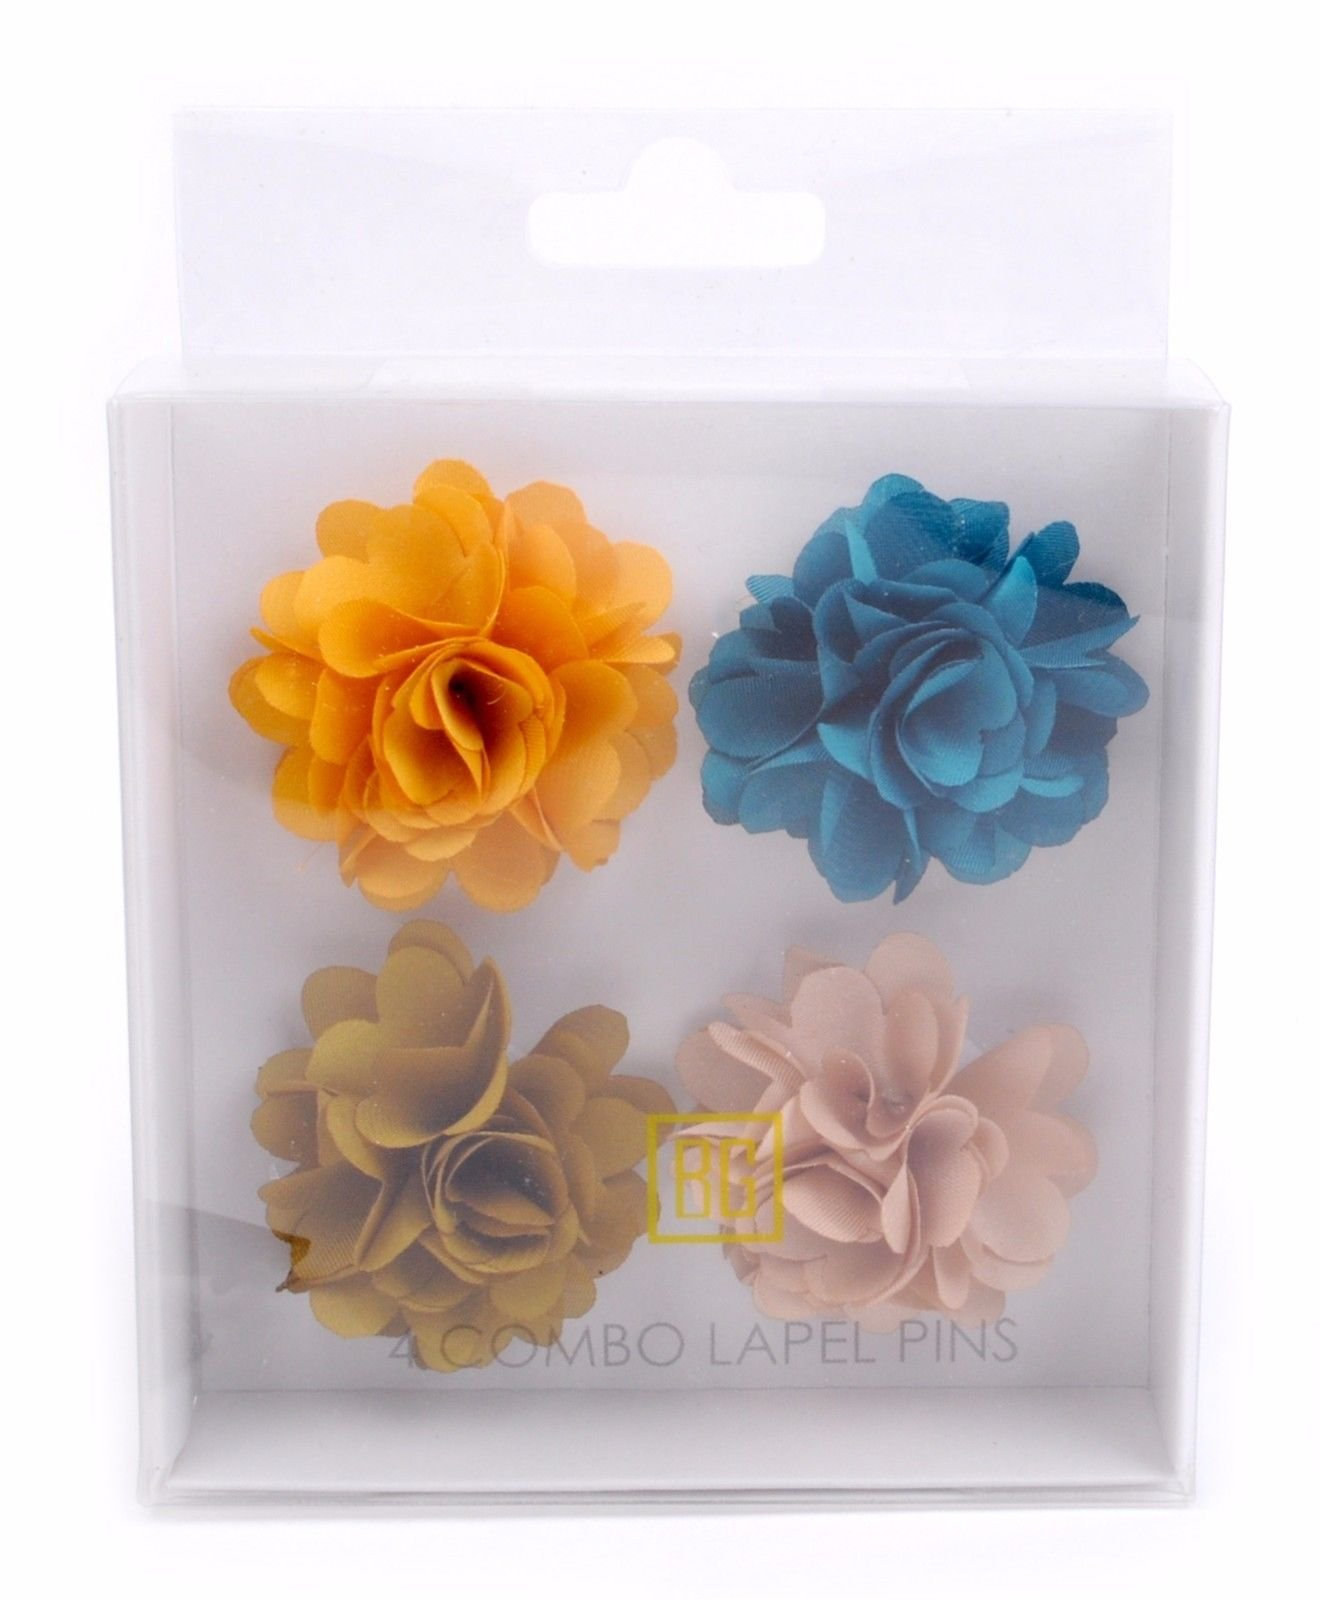 BG-Mini-Bouquet-Clutch-Back-Flower-Tuxedo-Suit-Lapel-Pins-Boutonniere-4-Pack-Set thumbnail 19